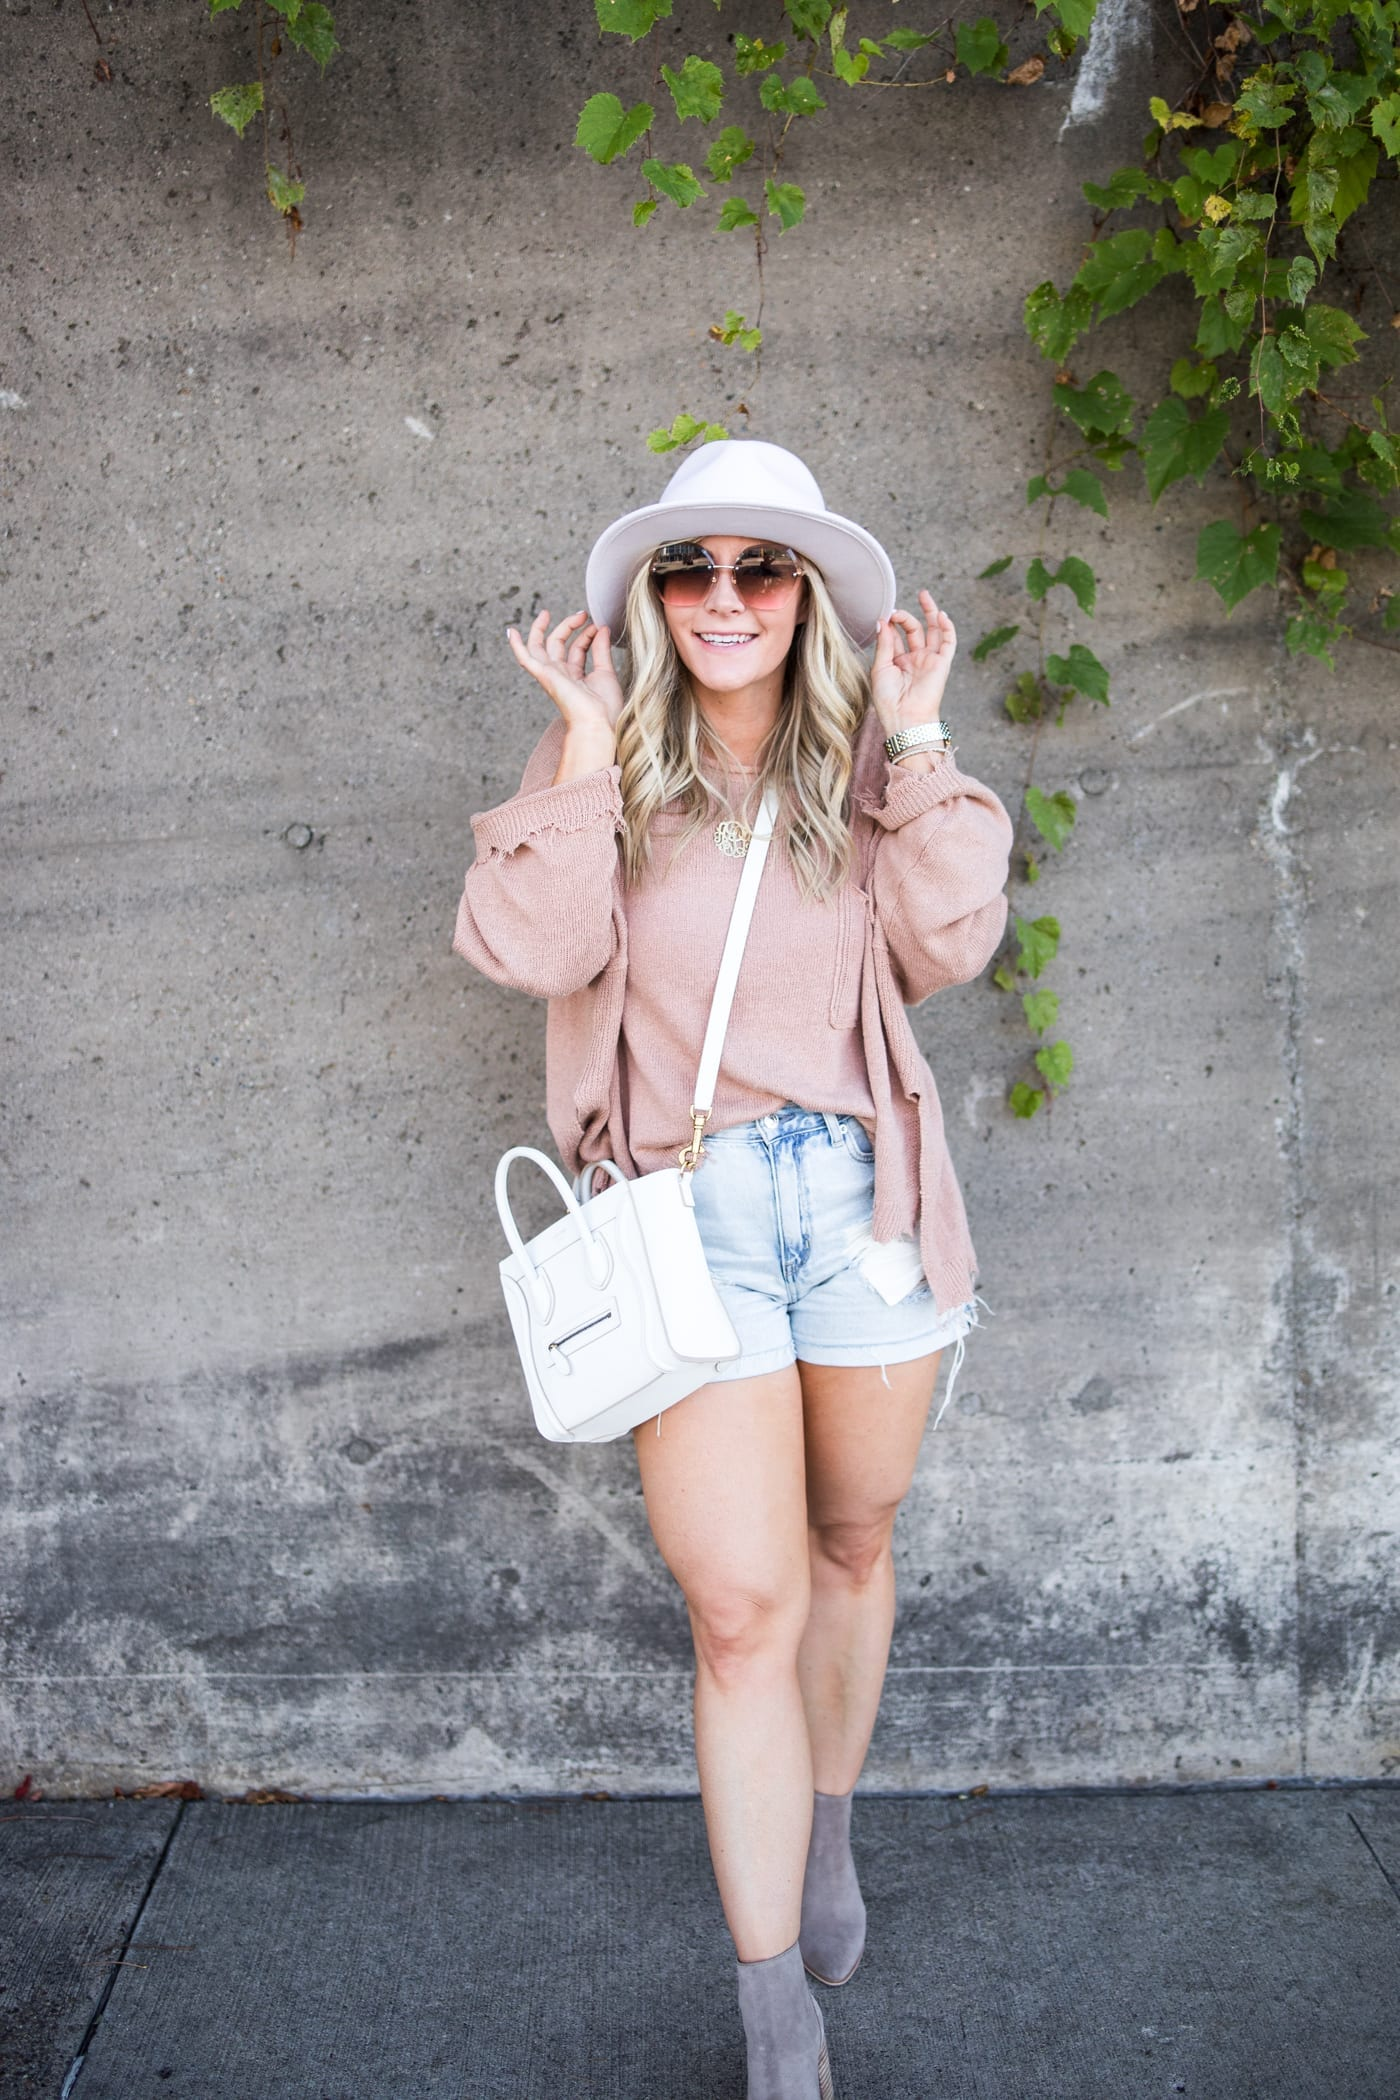 transitiong my closet- fall transition pieces- Marc Fisher Booties- Free People Sweater- White Wide Brim Hat-Afternoon Espresso